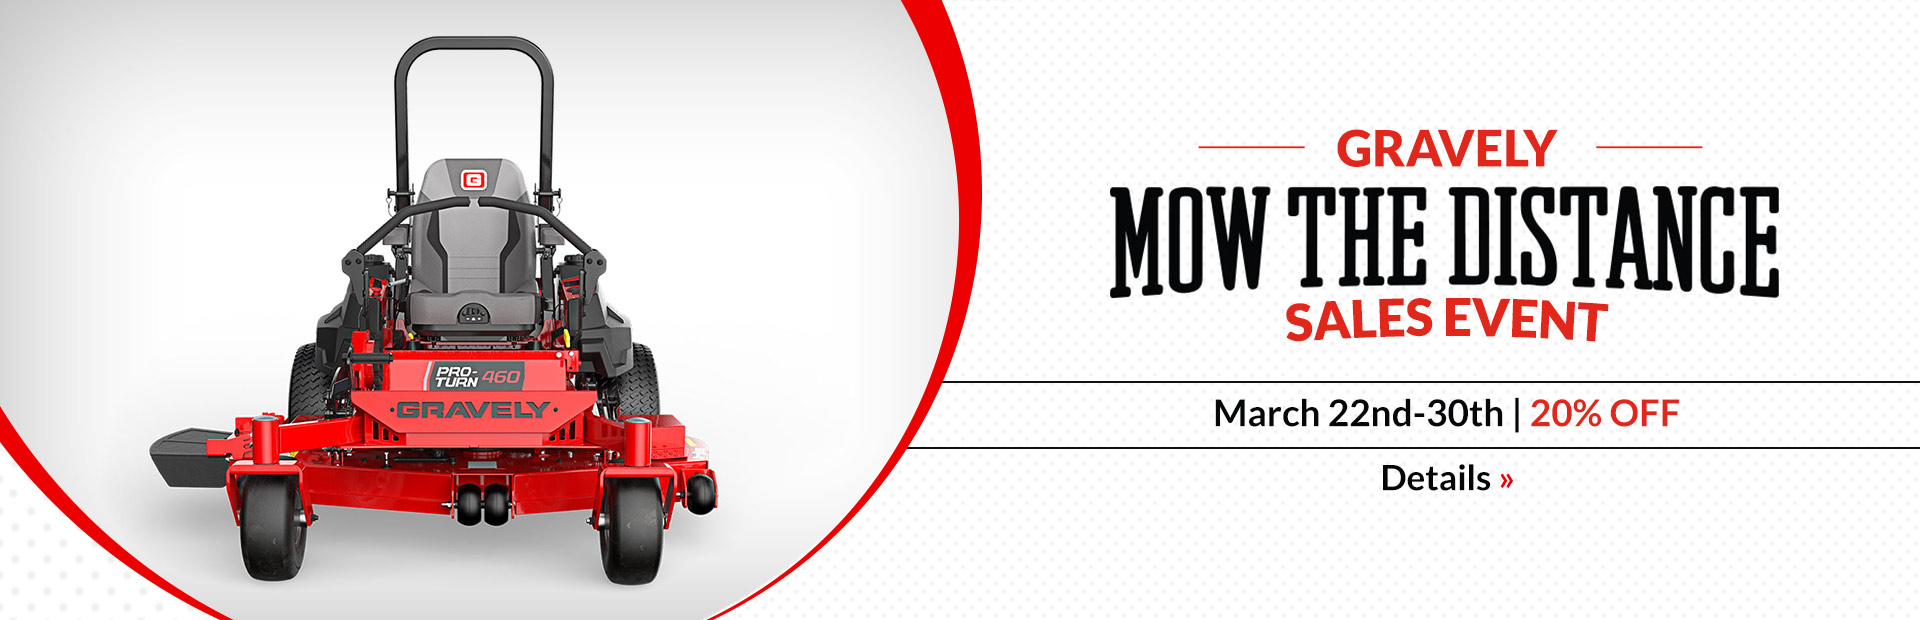 Gravely Mow the Distance sales event from March 22nd through 30th: 20% off. Click here for details.